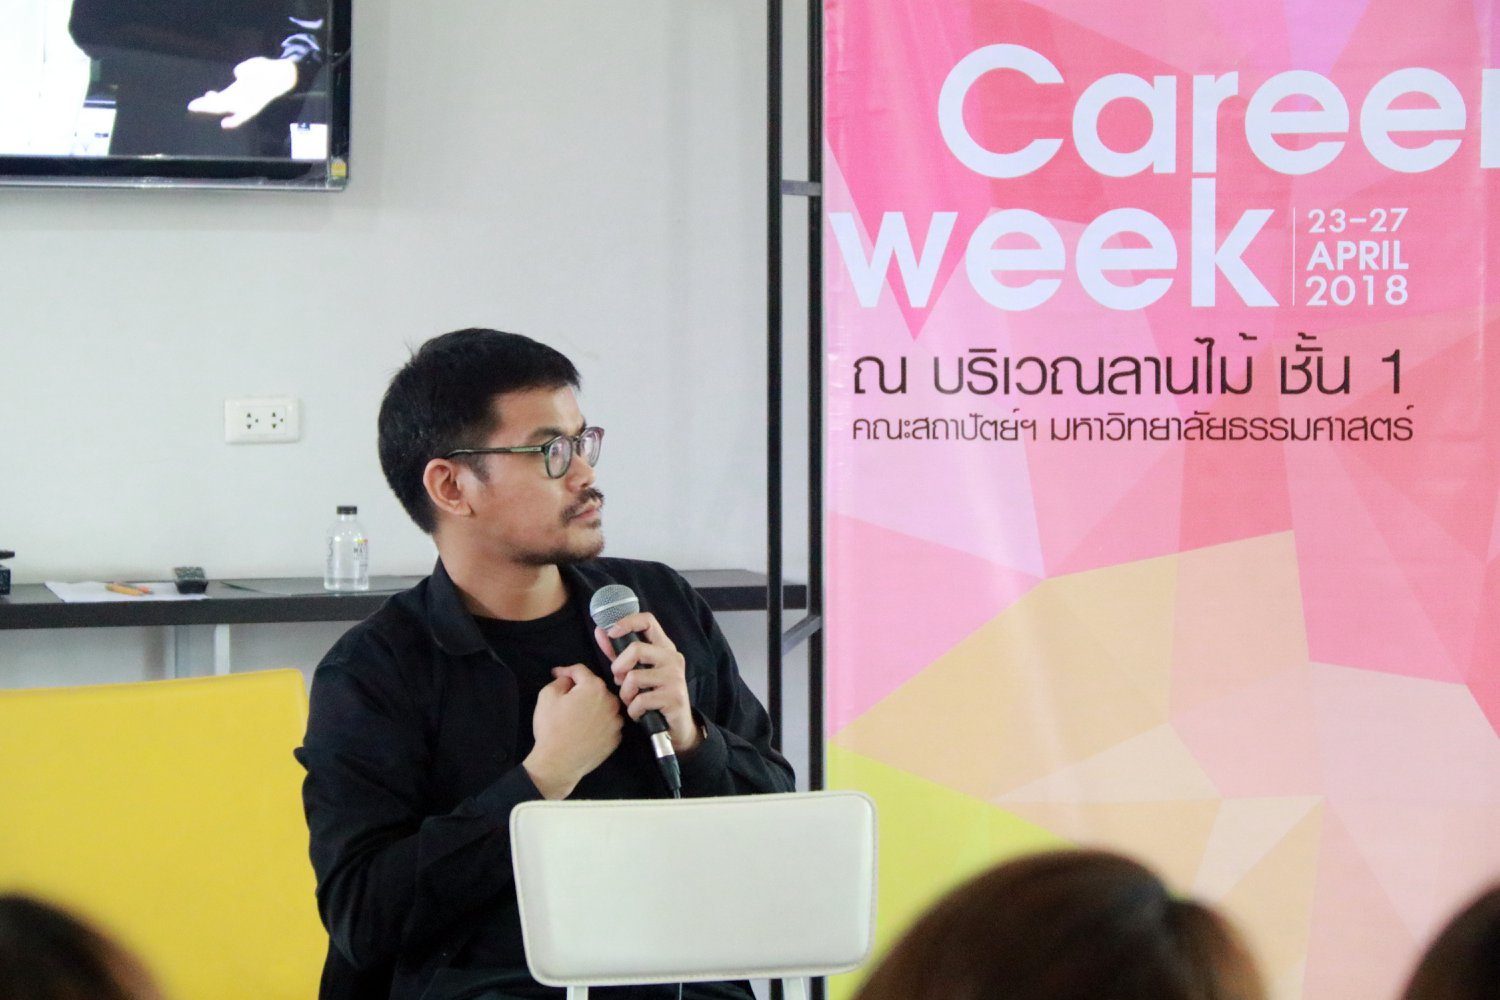 http://www.tds.tu.ac.th/tds-career-week-2018/